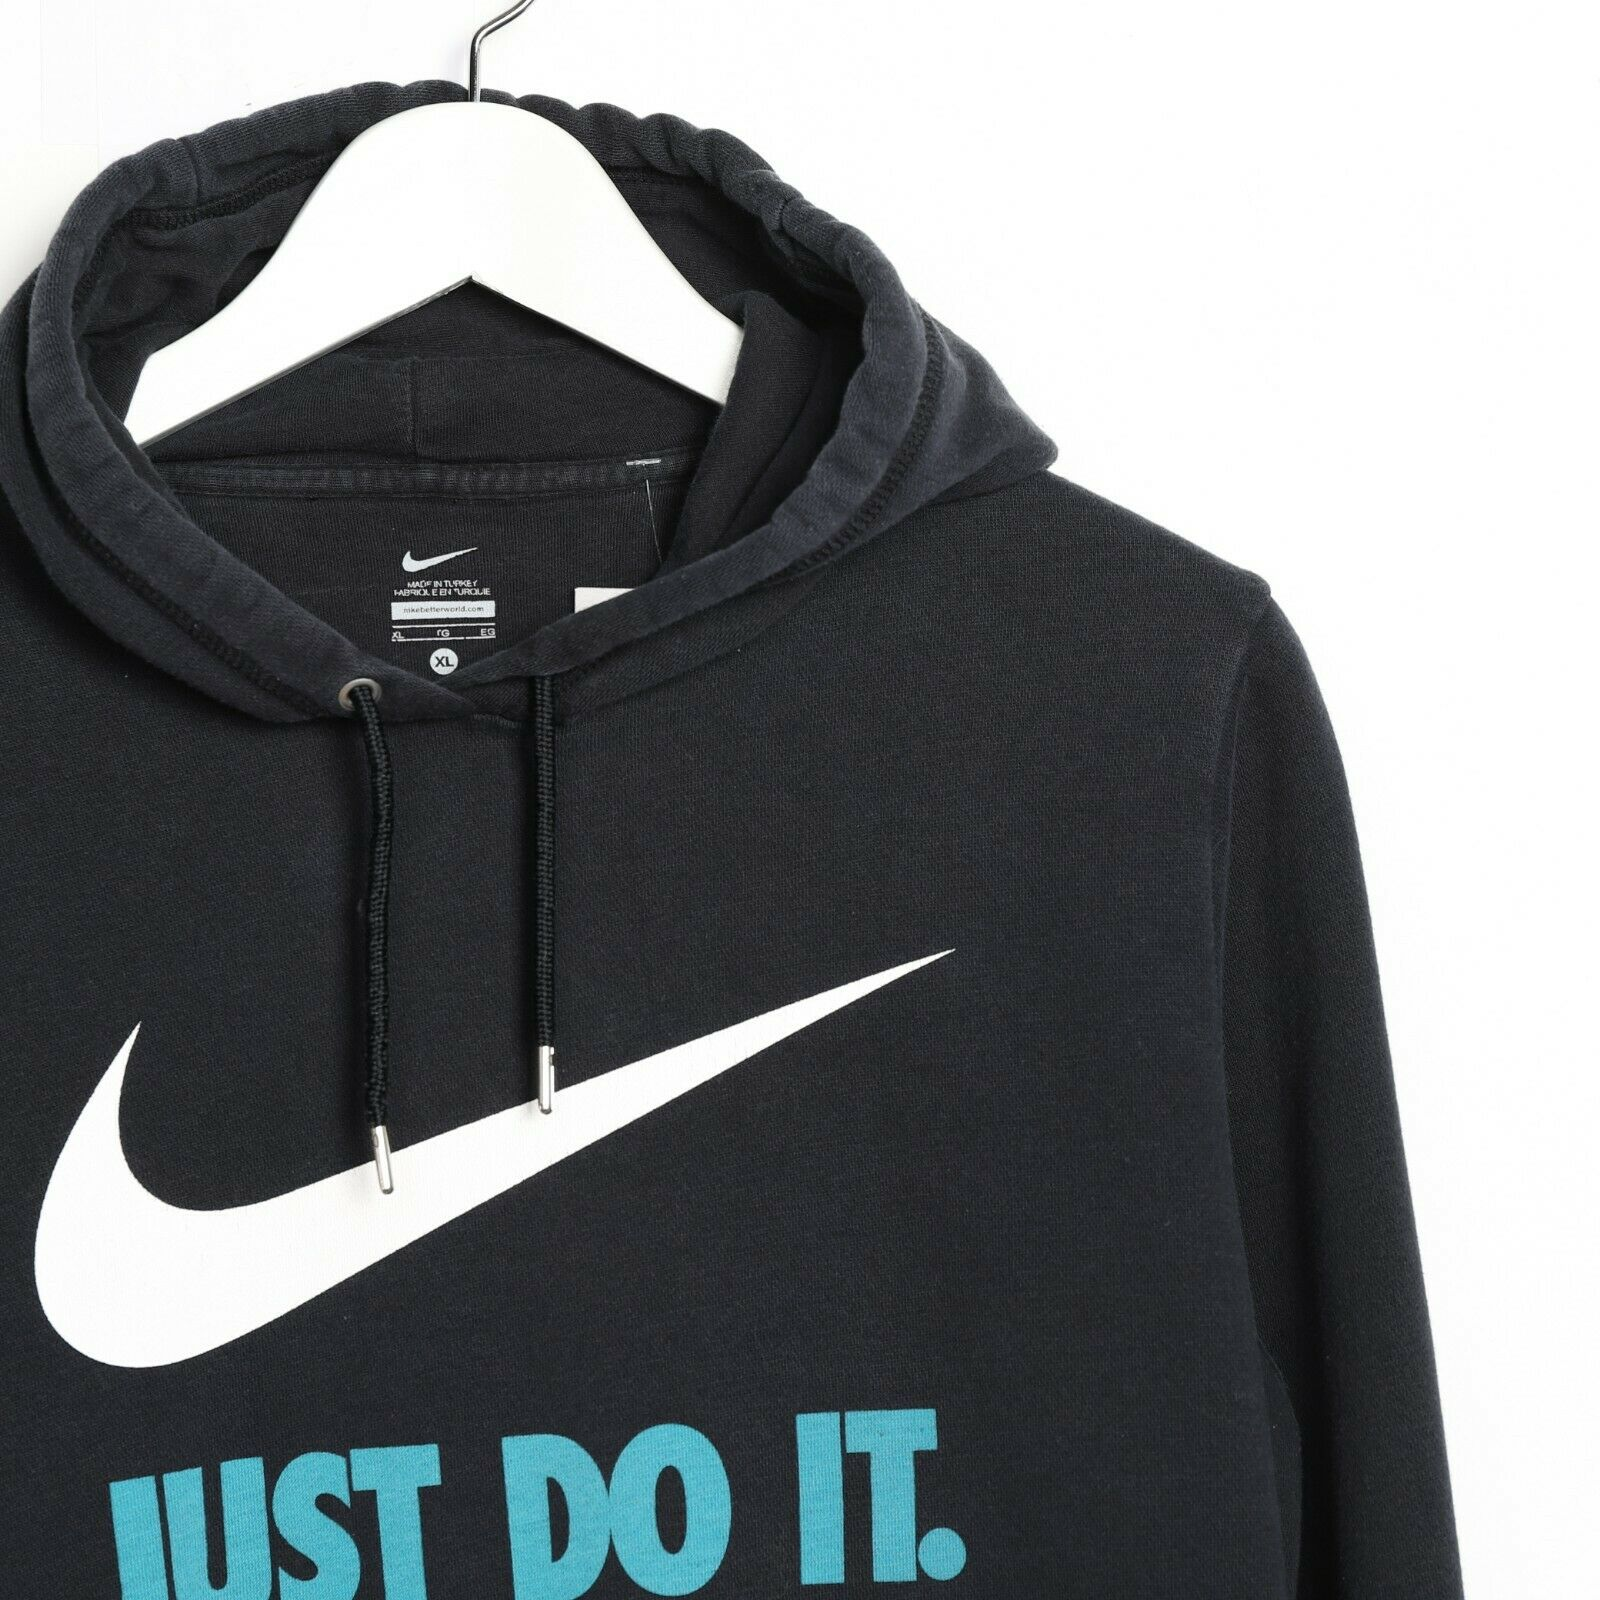 Vintage NIKE Small Logo Hoodie Sweatshirt Black | Small S